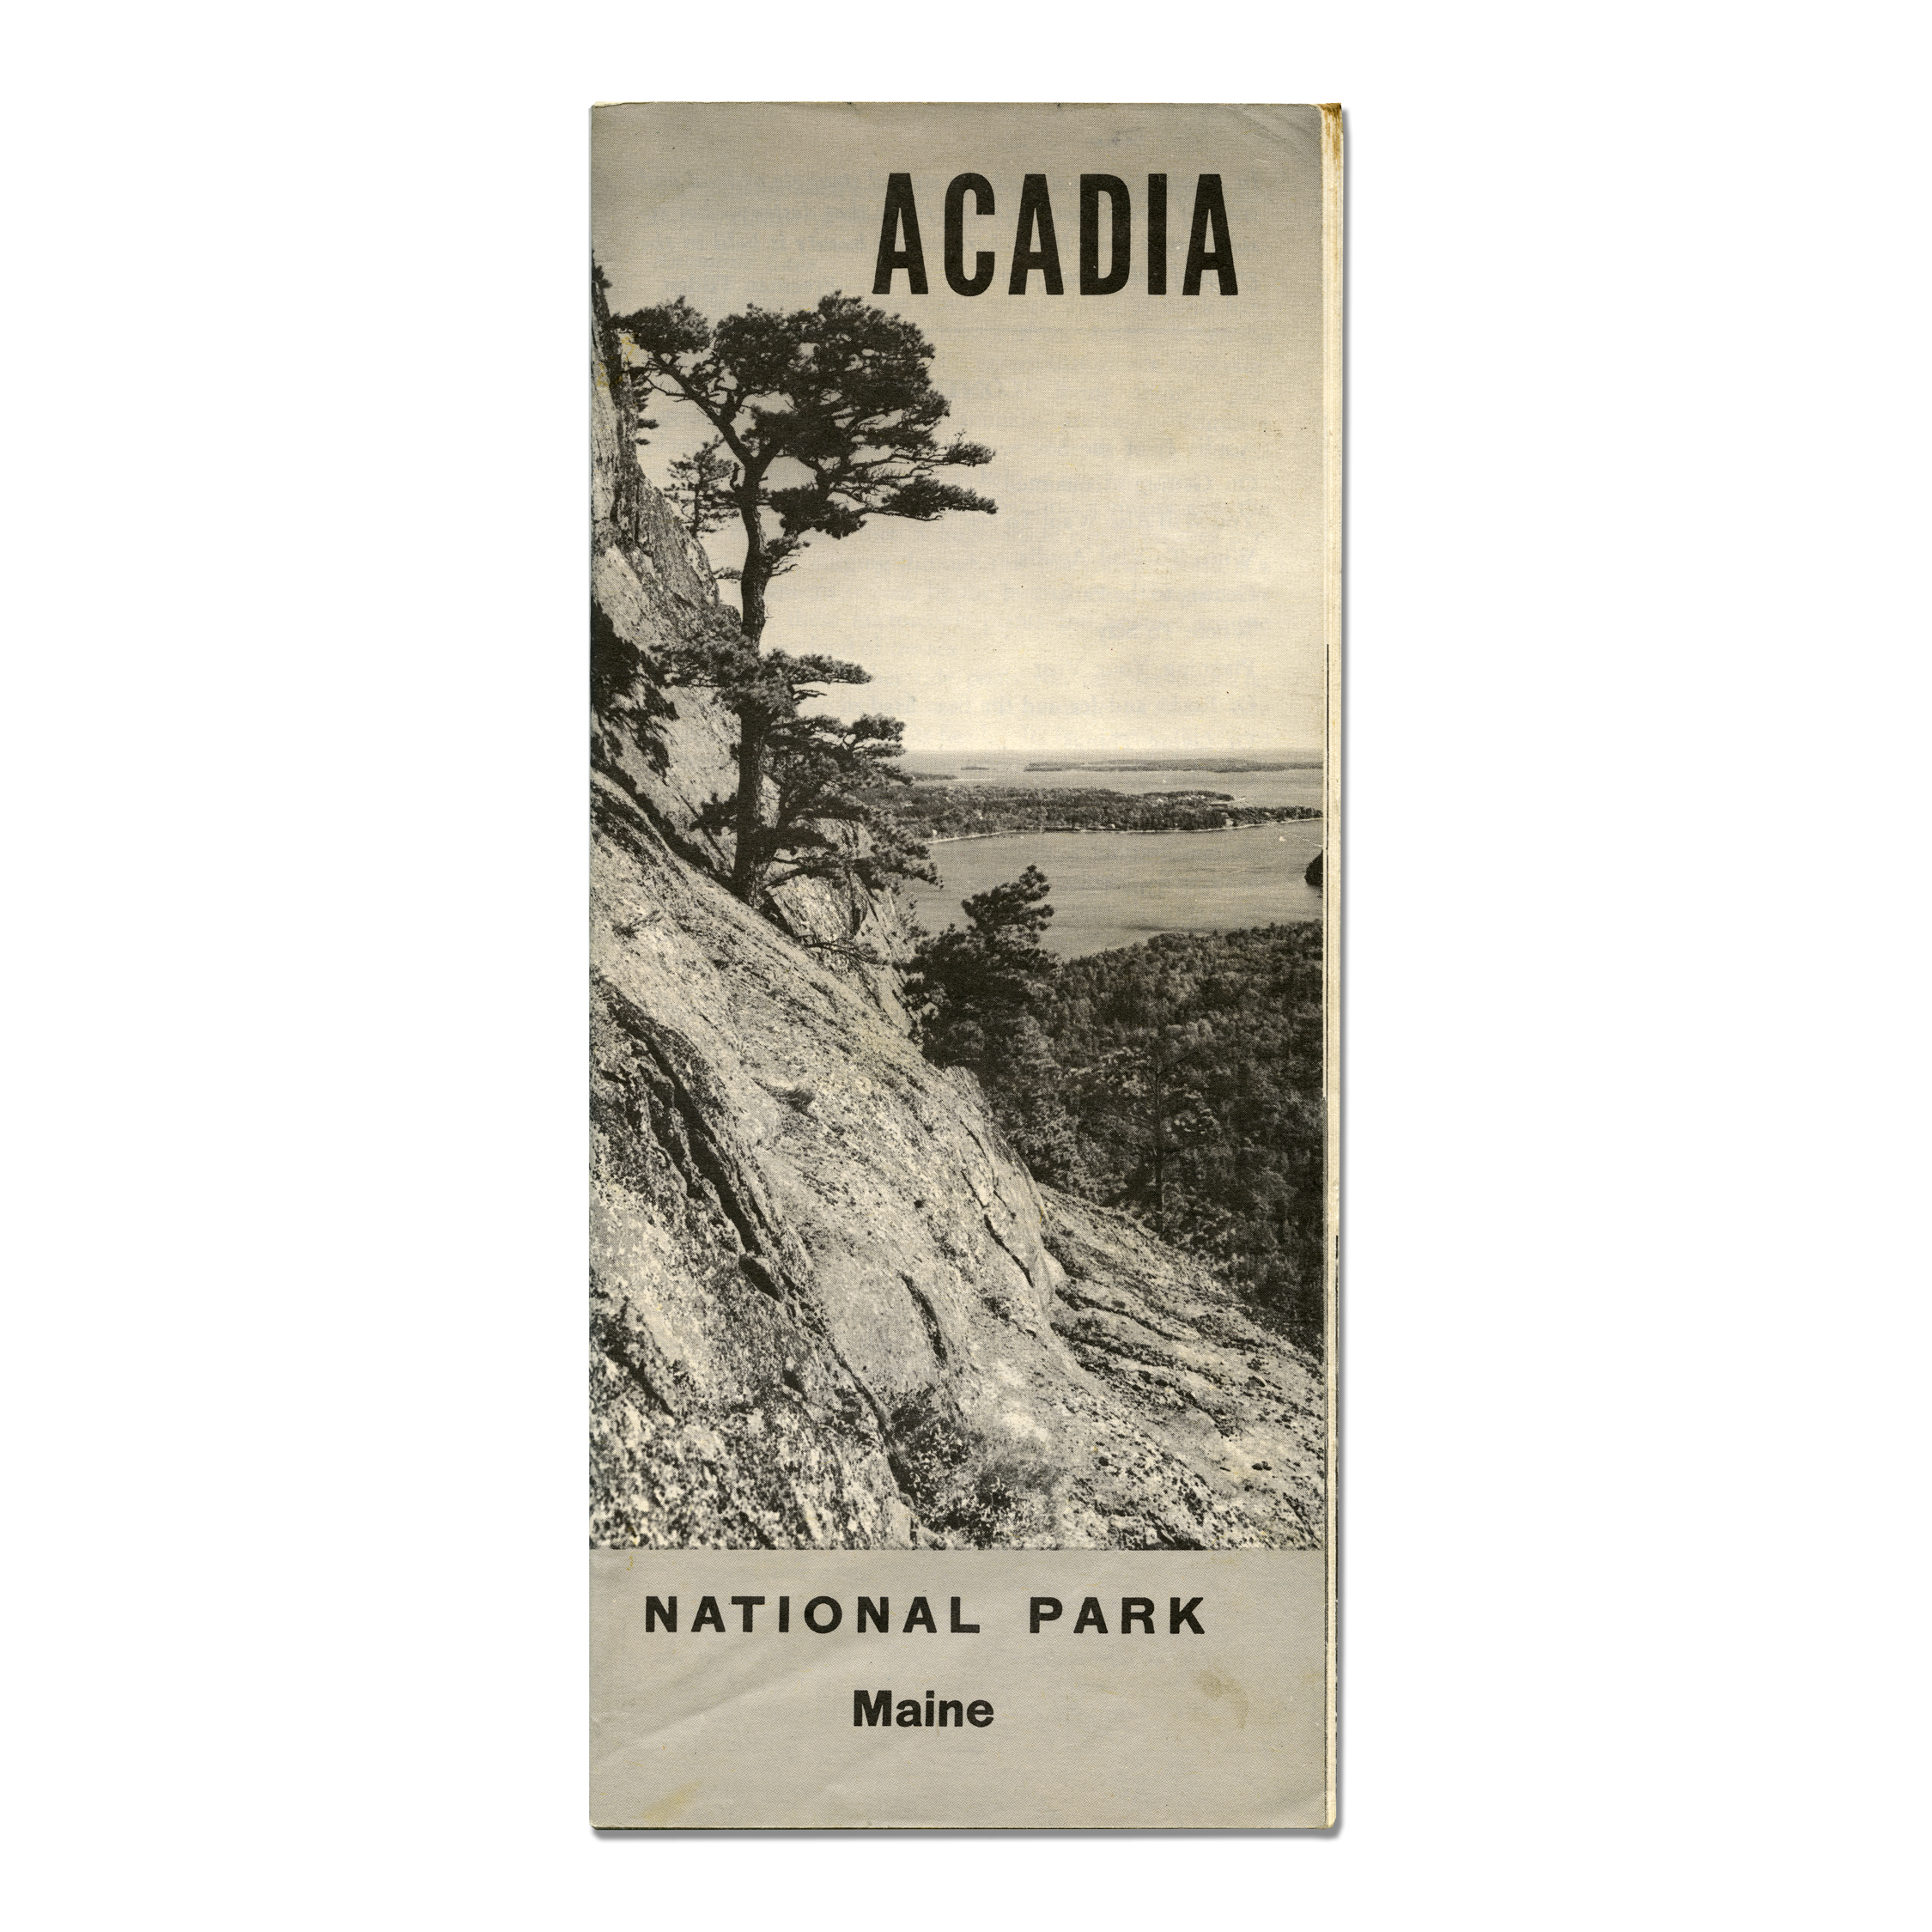 1963_acadia_national_park_brochure.jpg